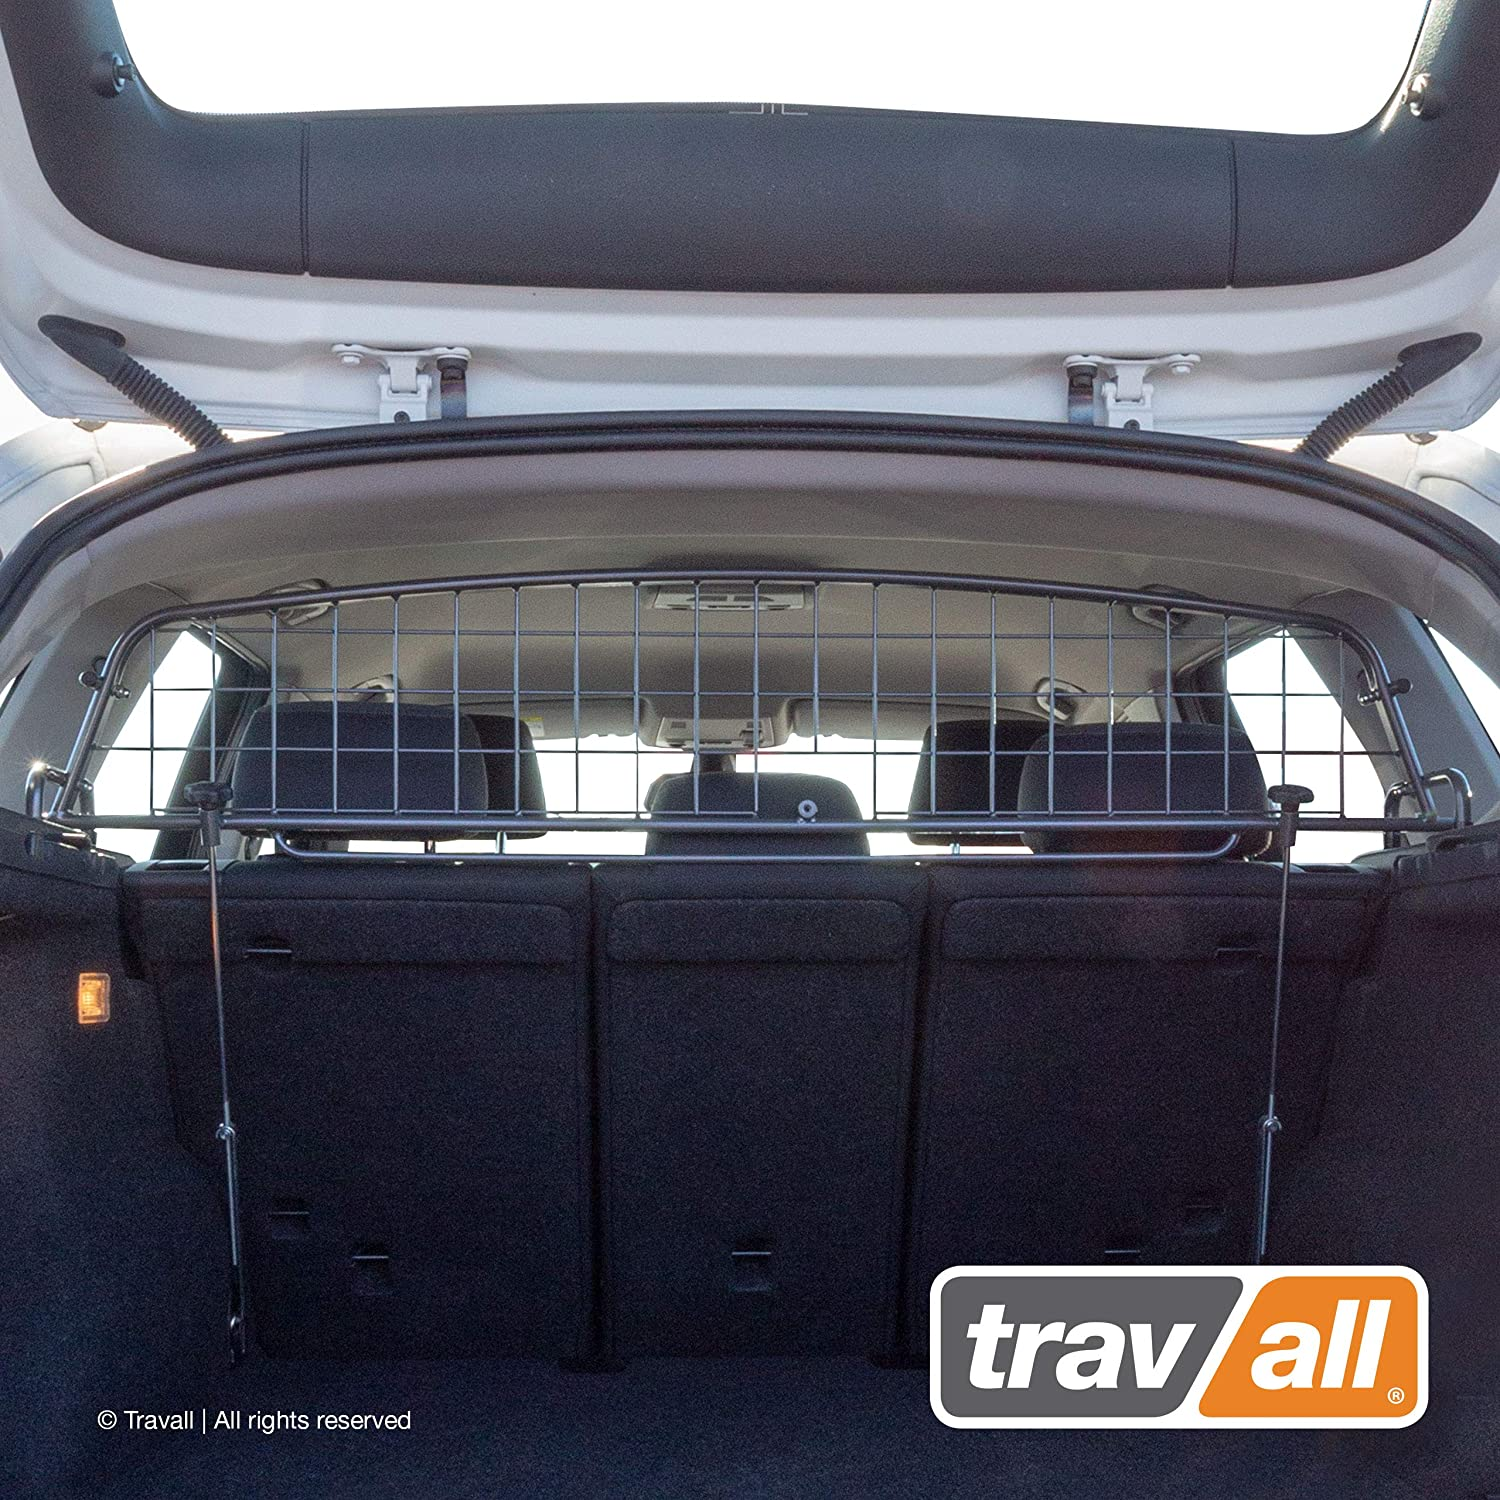 Travall Guard Compatible with BMW X1 2009-2015 TDG1250 – Rattle-Free Luggage and Pet Barrier